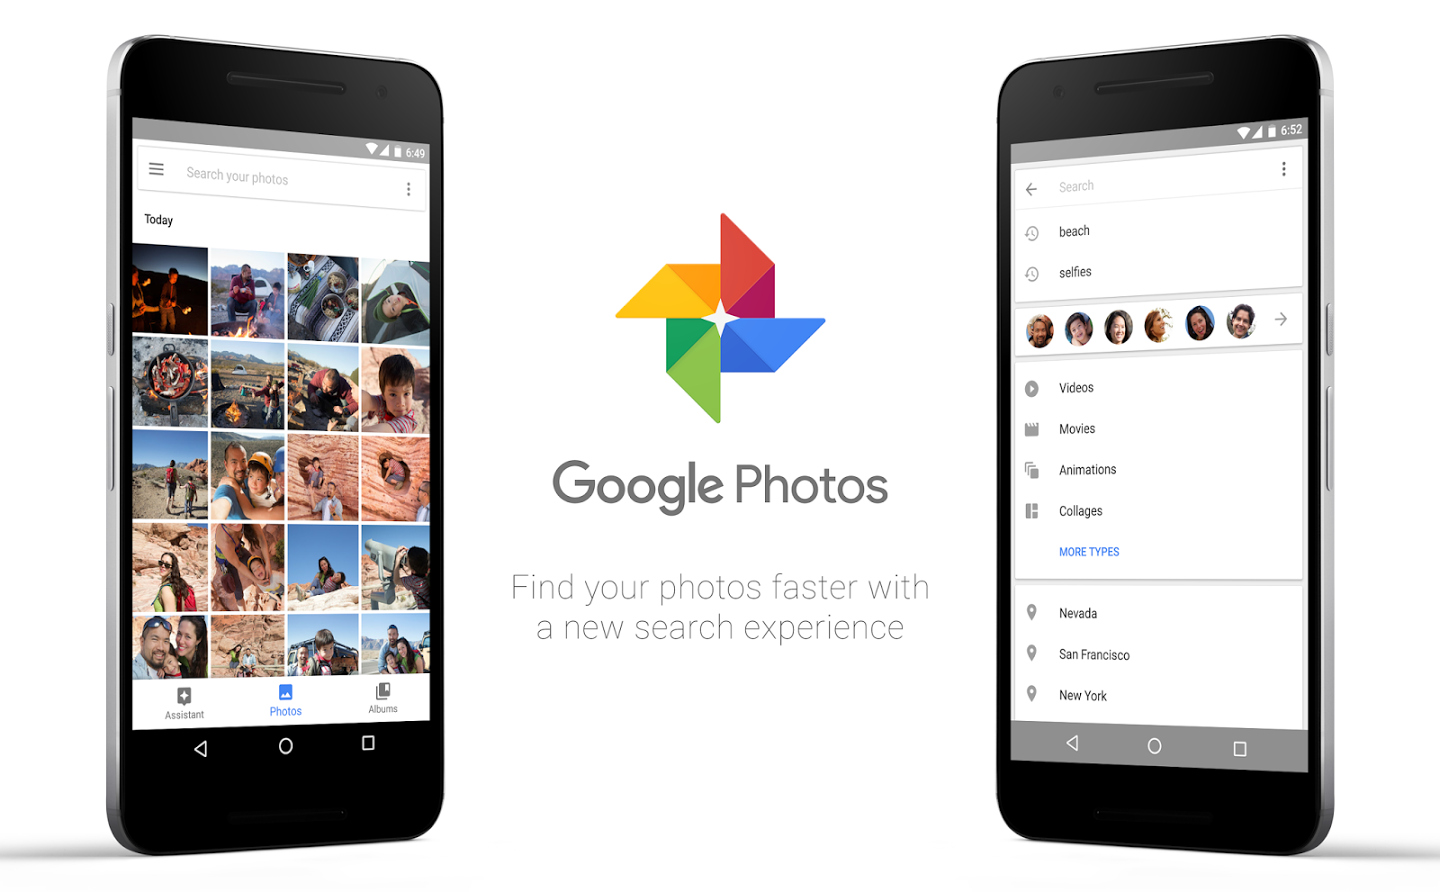 Google Photos 1.1 for iOS revamped search teaser 001